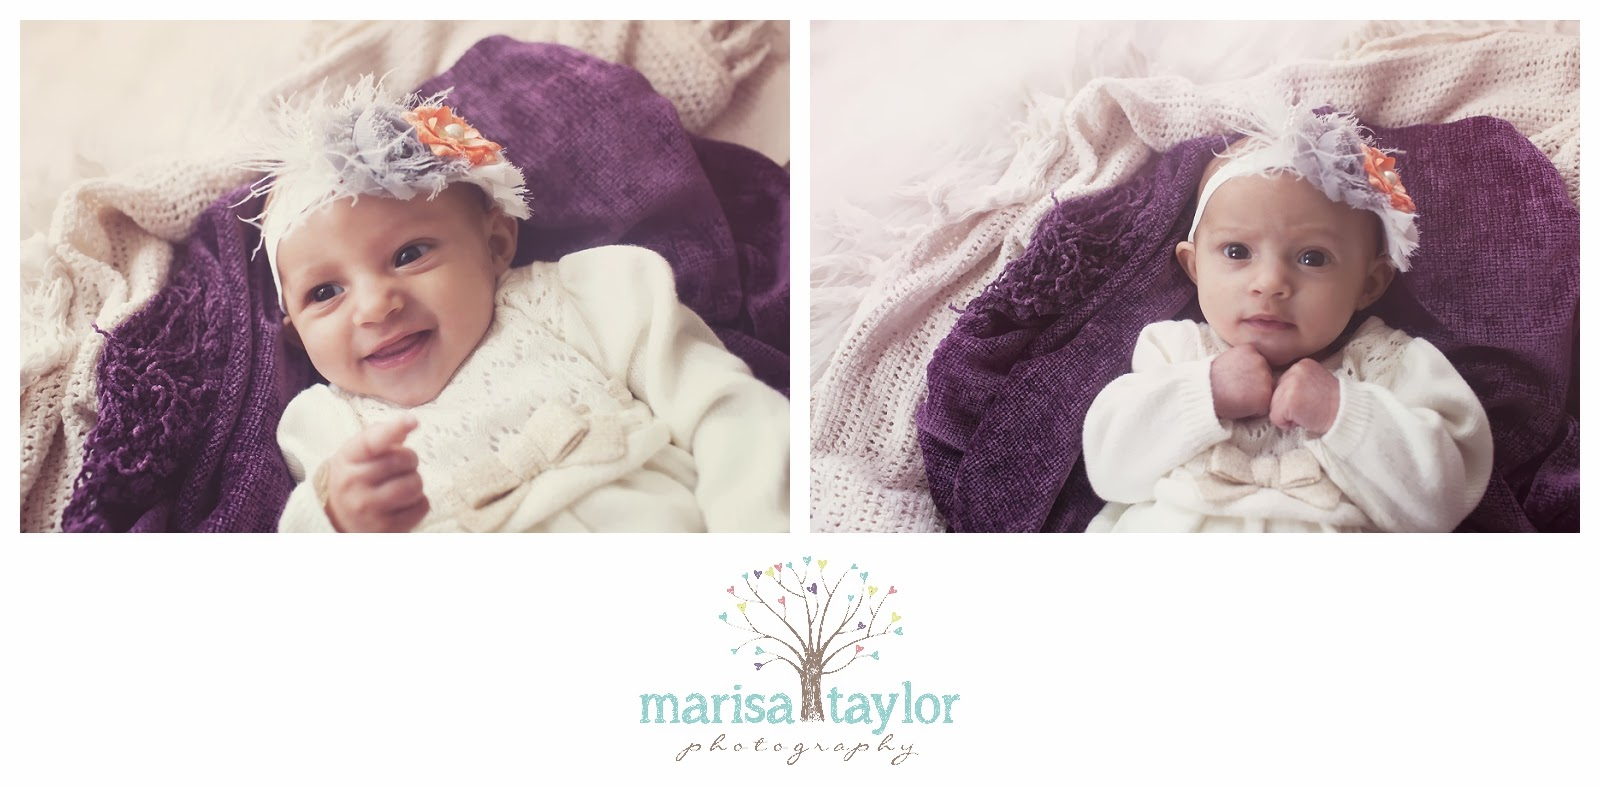 marisa taylor photography, delaware child photographer, delaware family photographer, portrait photography, family portraits, child portraits